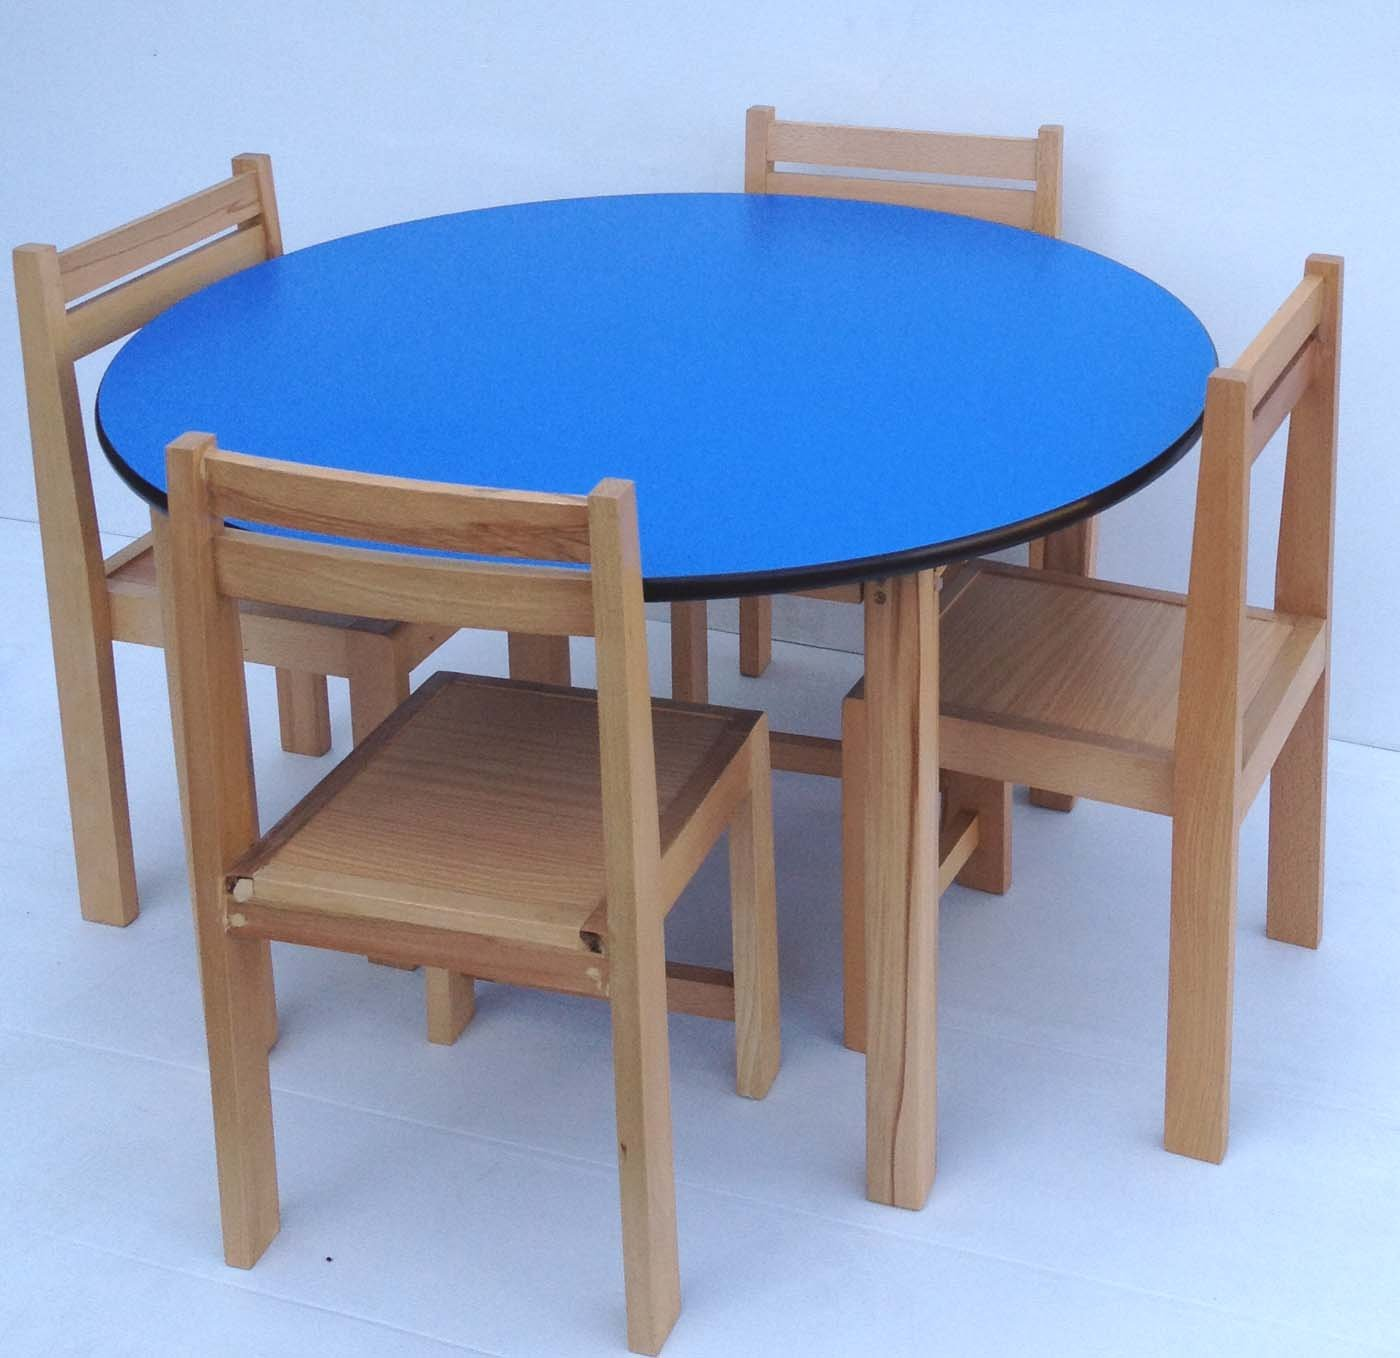 Round school table - Kids Table Chairs Set Beech Wood Round Table And Wooden Stacking Chairs White Amazon Co Uk Kitchen Home